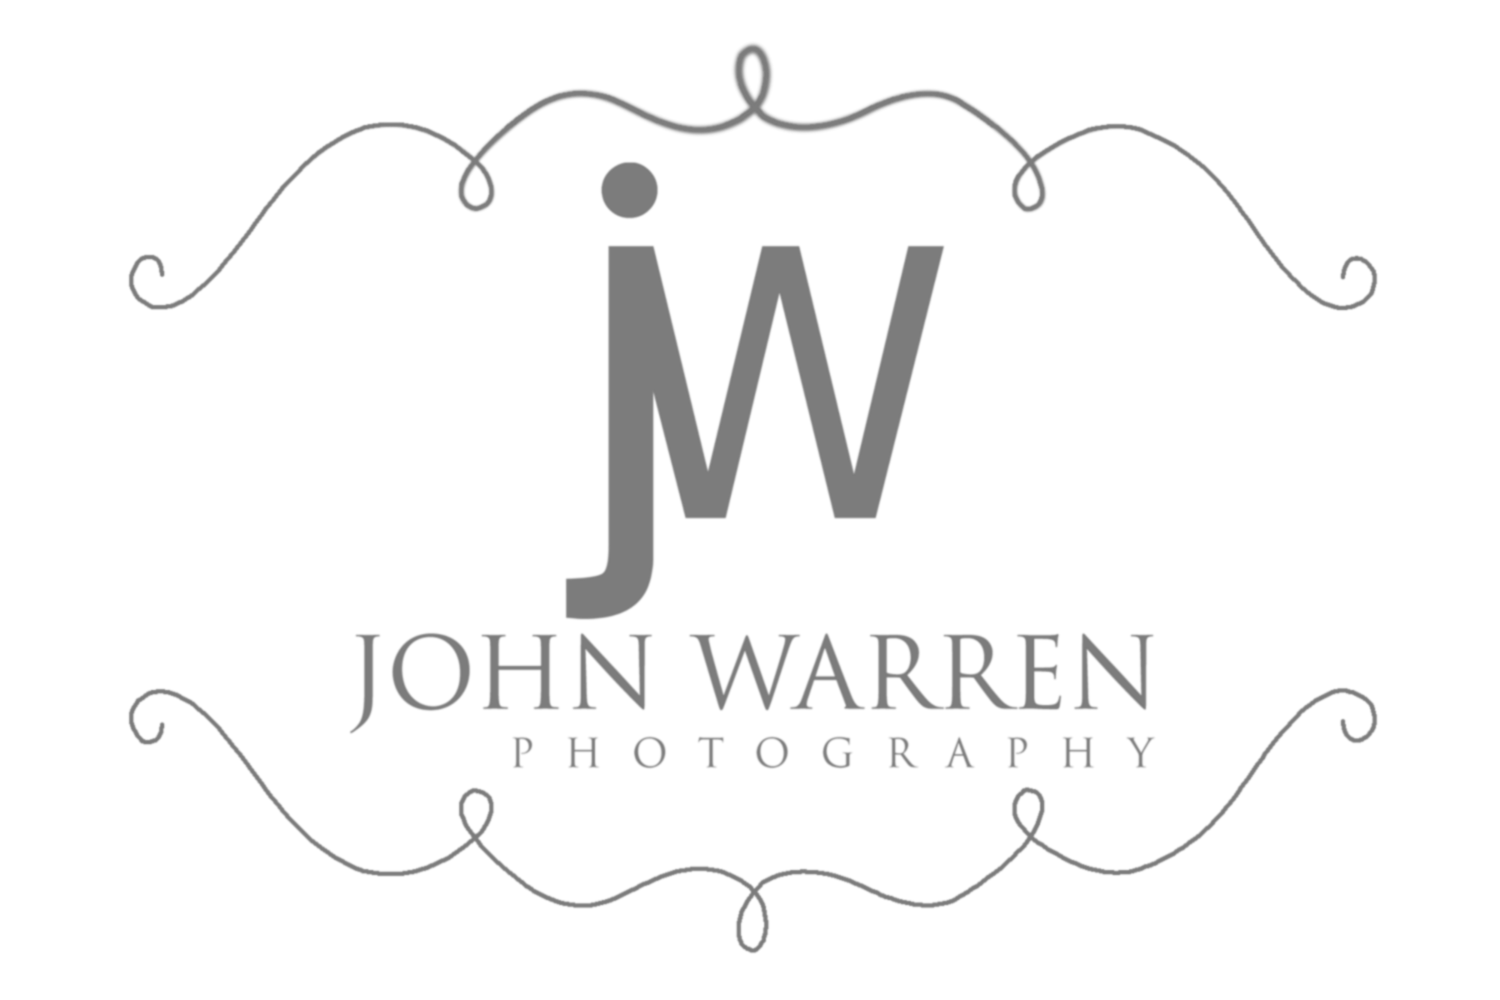 John Warren Photography